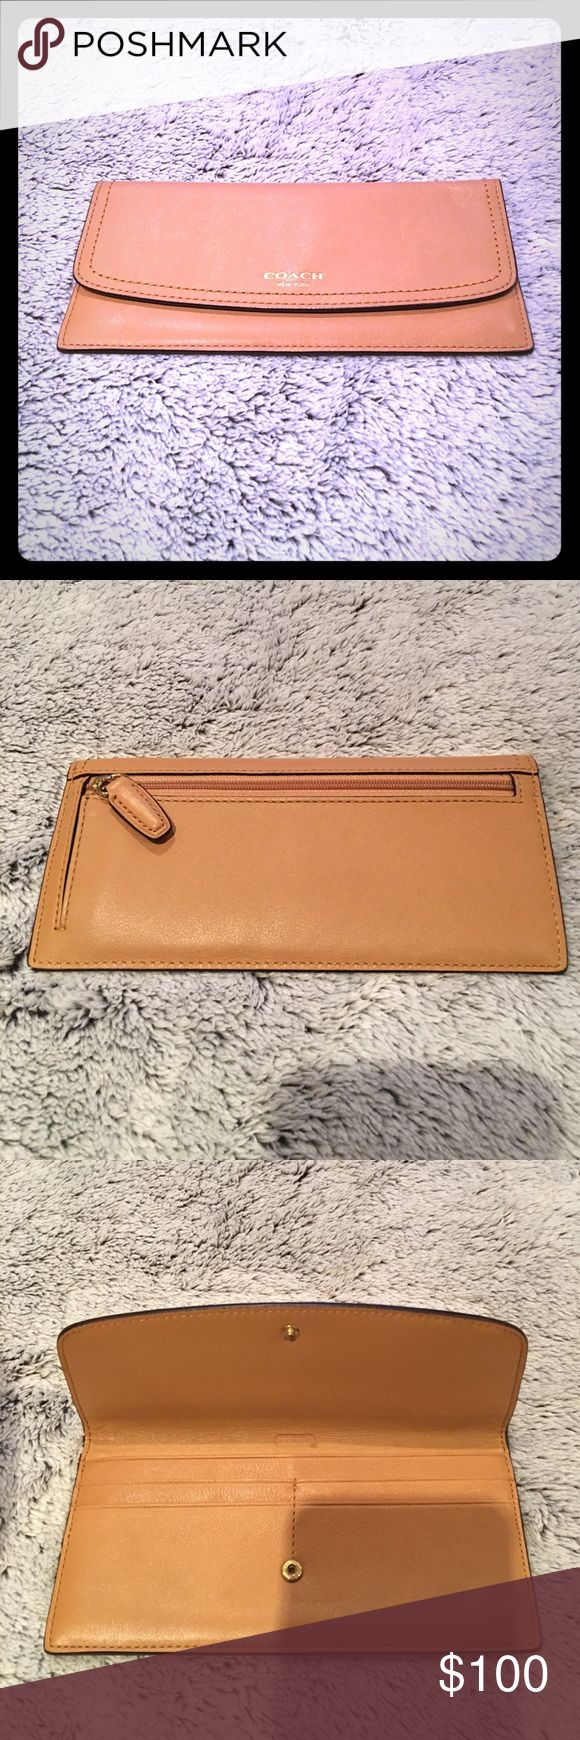 Coach Legacy Envelope Wallet Coach Legacy Envelope Wallet in Light Tan • Only Used twice so it's in perfect condition Coach Bags Wallets